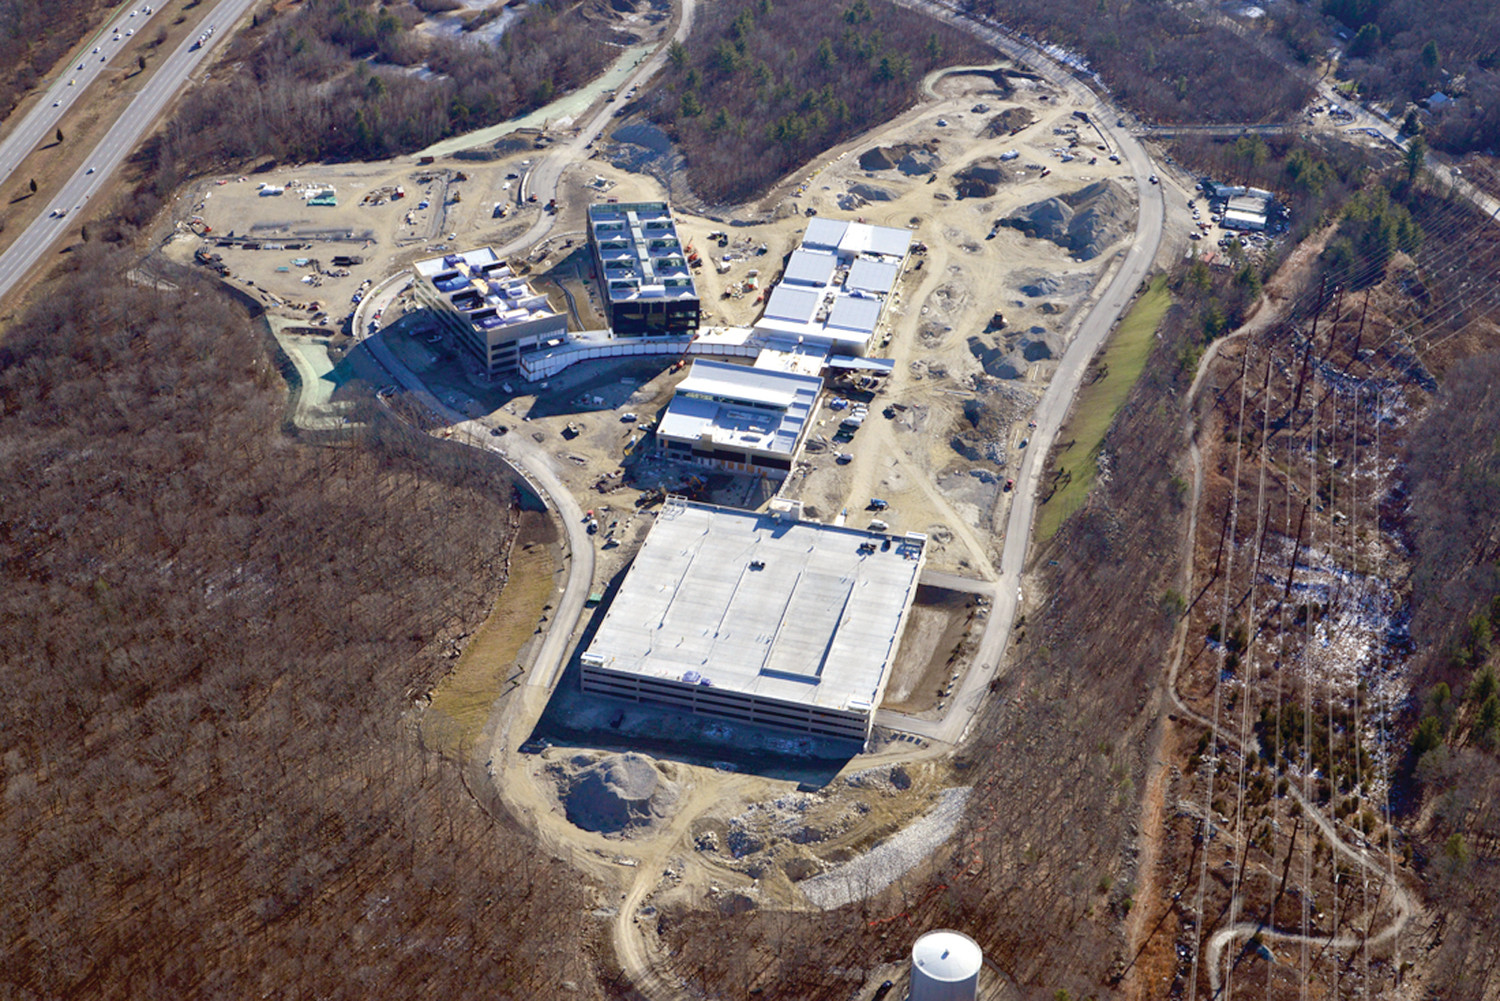 EYE IN THE SKY: An aerial view of the current work at the Citizens Bank Campus, located off of Greenville Avenue and Route 295 in Johnston.